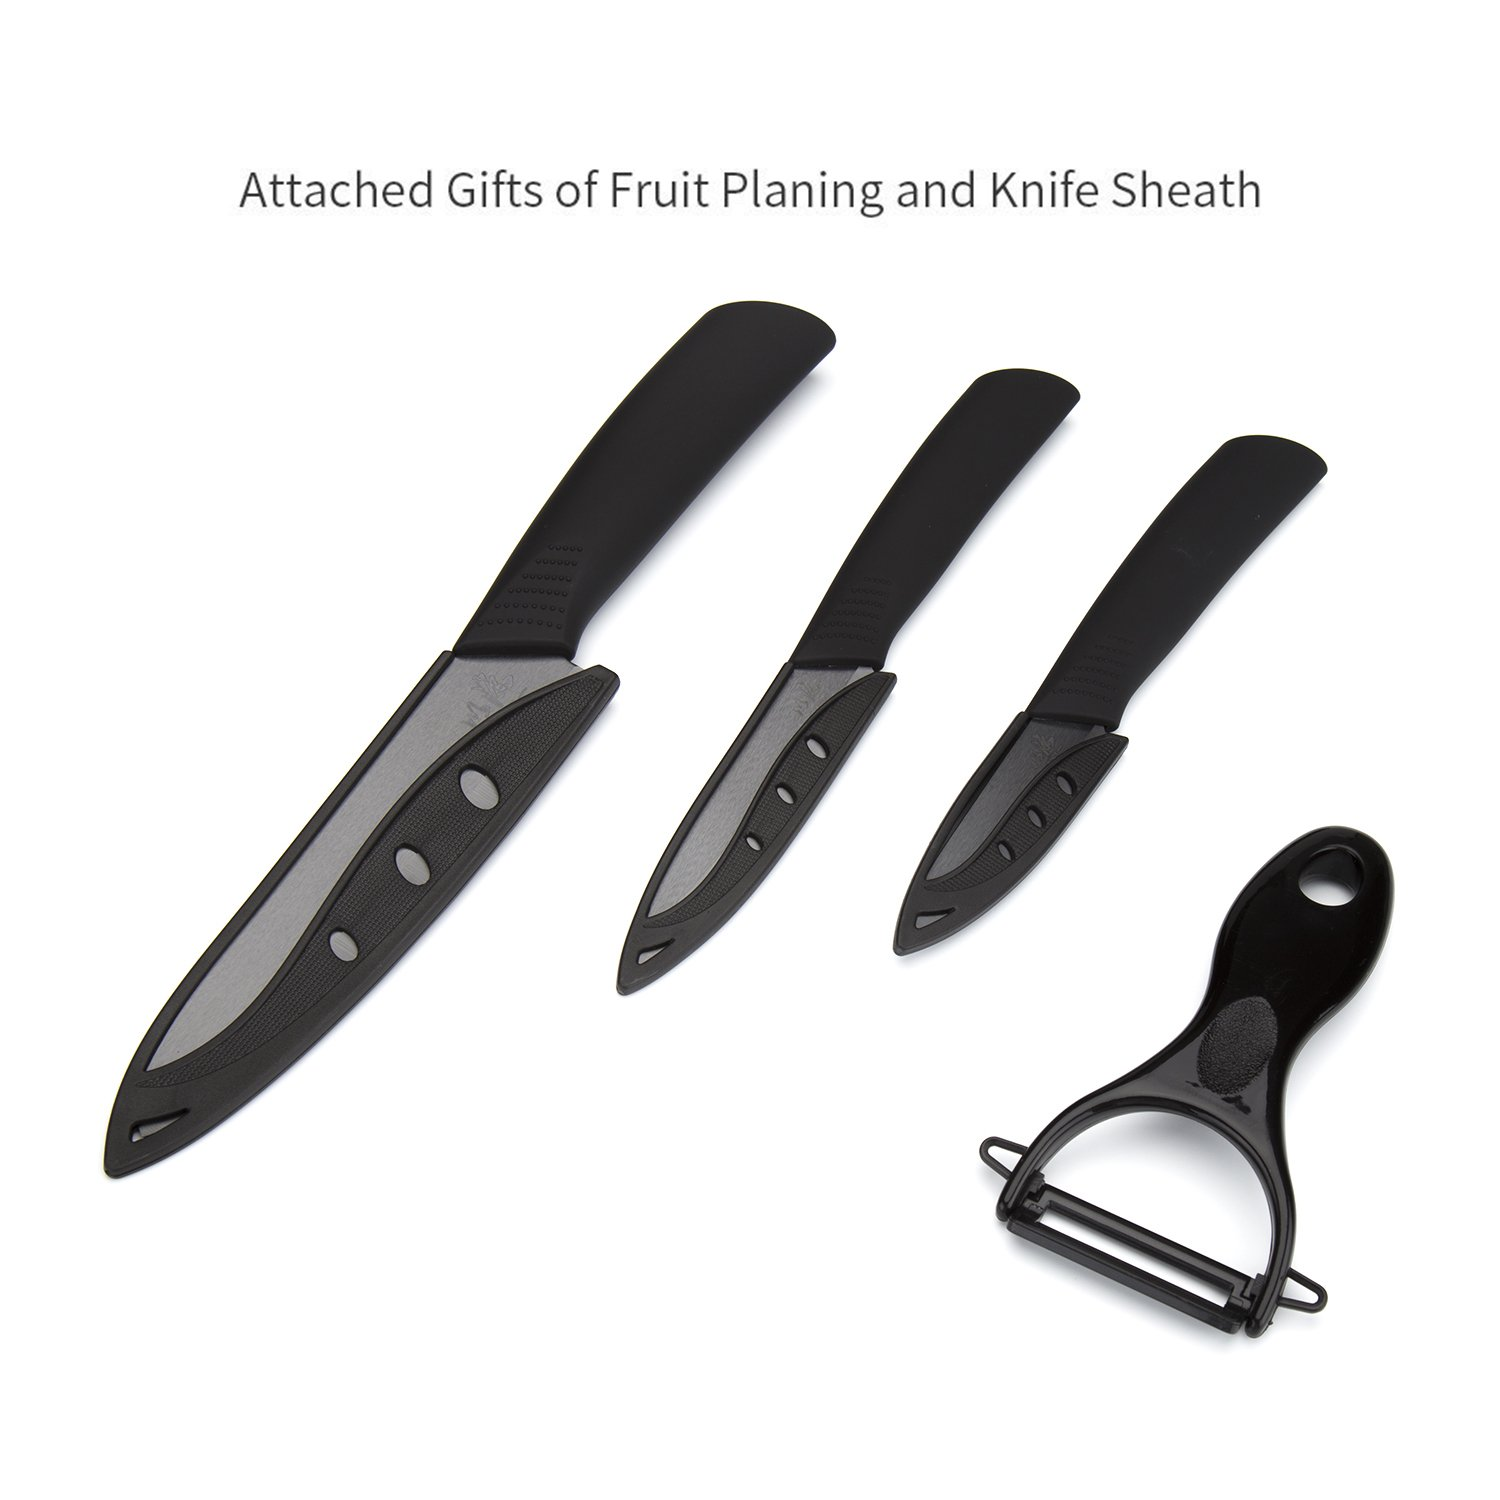 icxox Ceramic Knife Set 6 Inch Chef Knife & 4 Inch Fruit Knife & 3 Inch Paring Knife & Peeler (4 Piece, Black Blade)